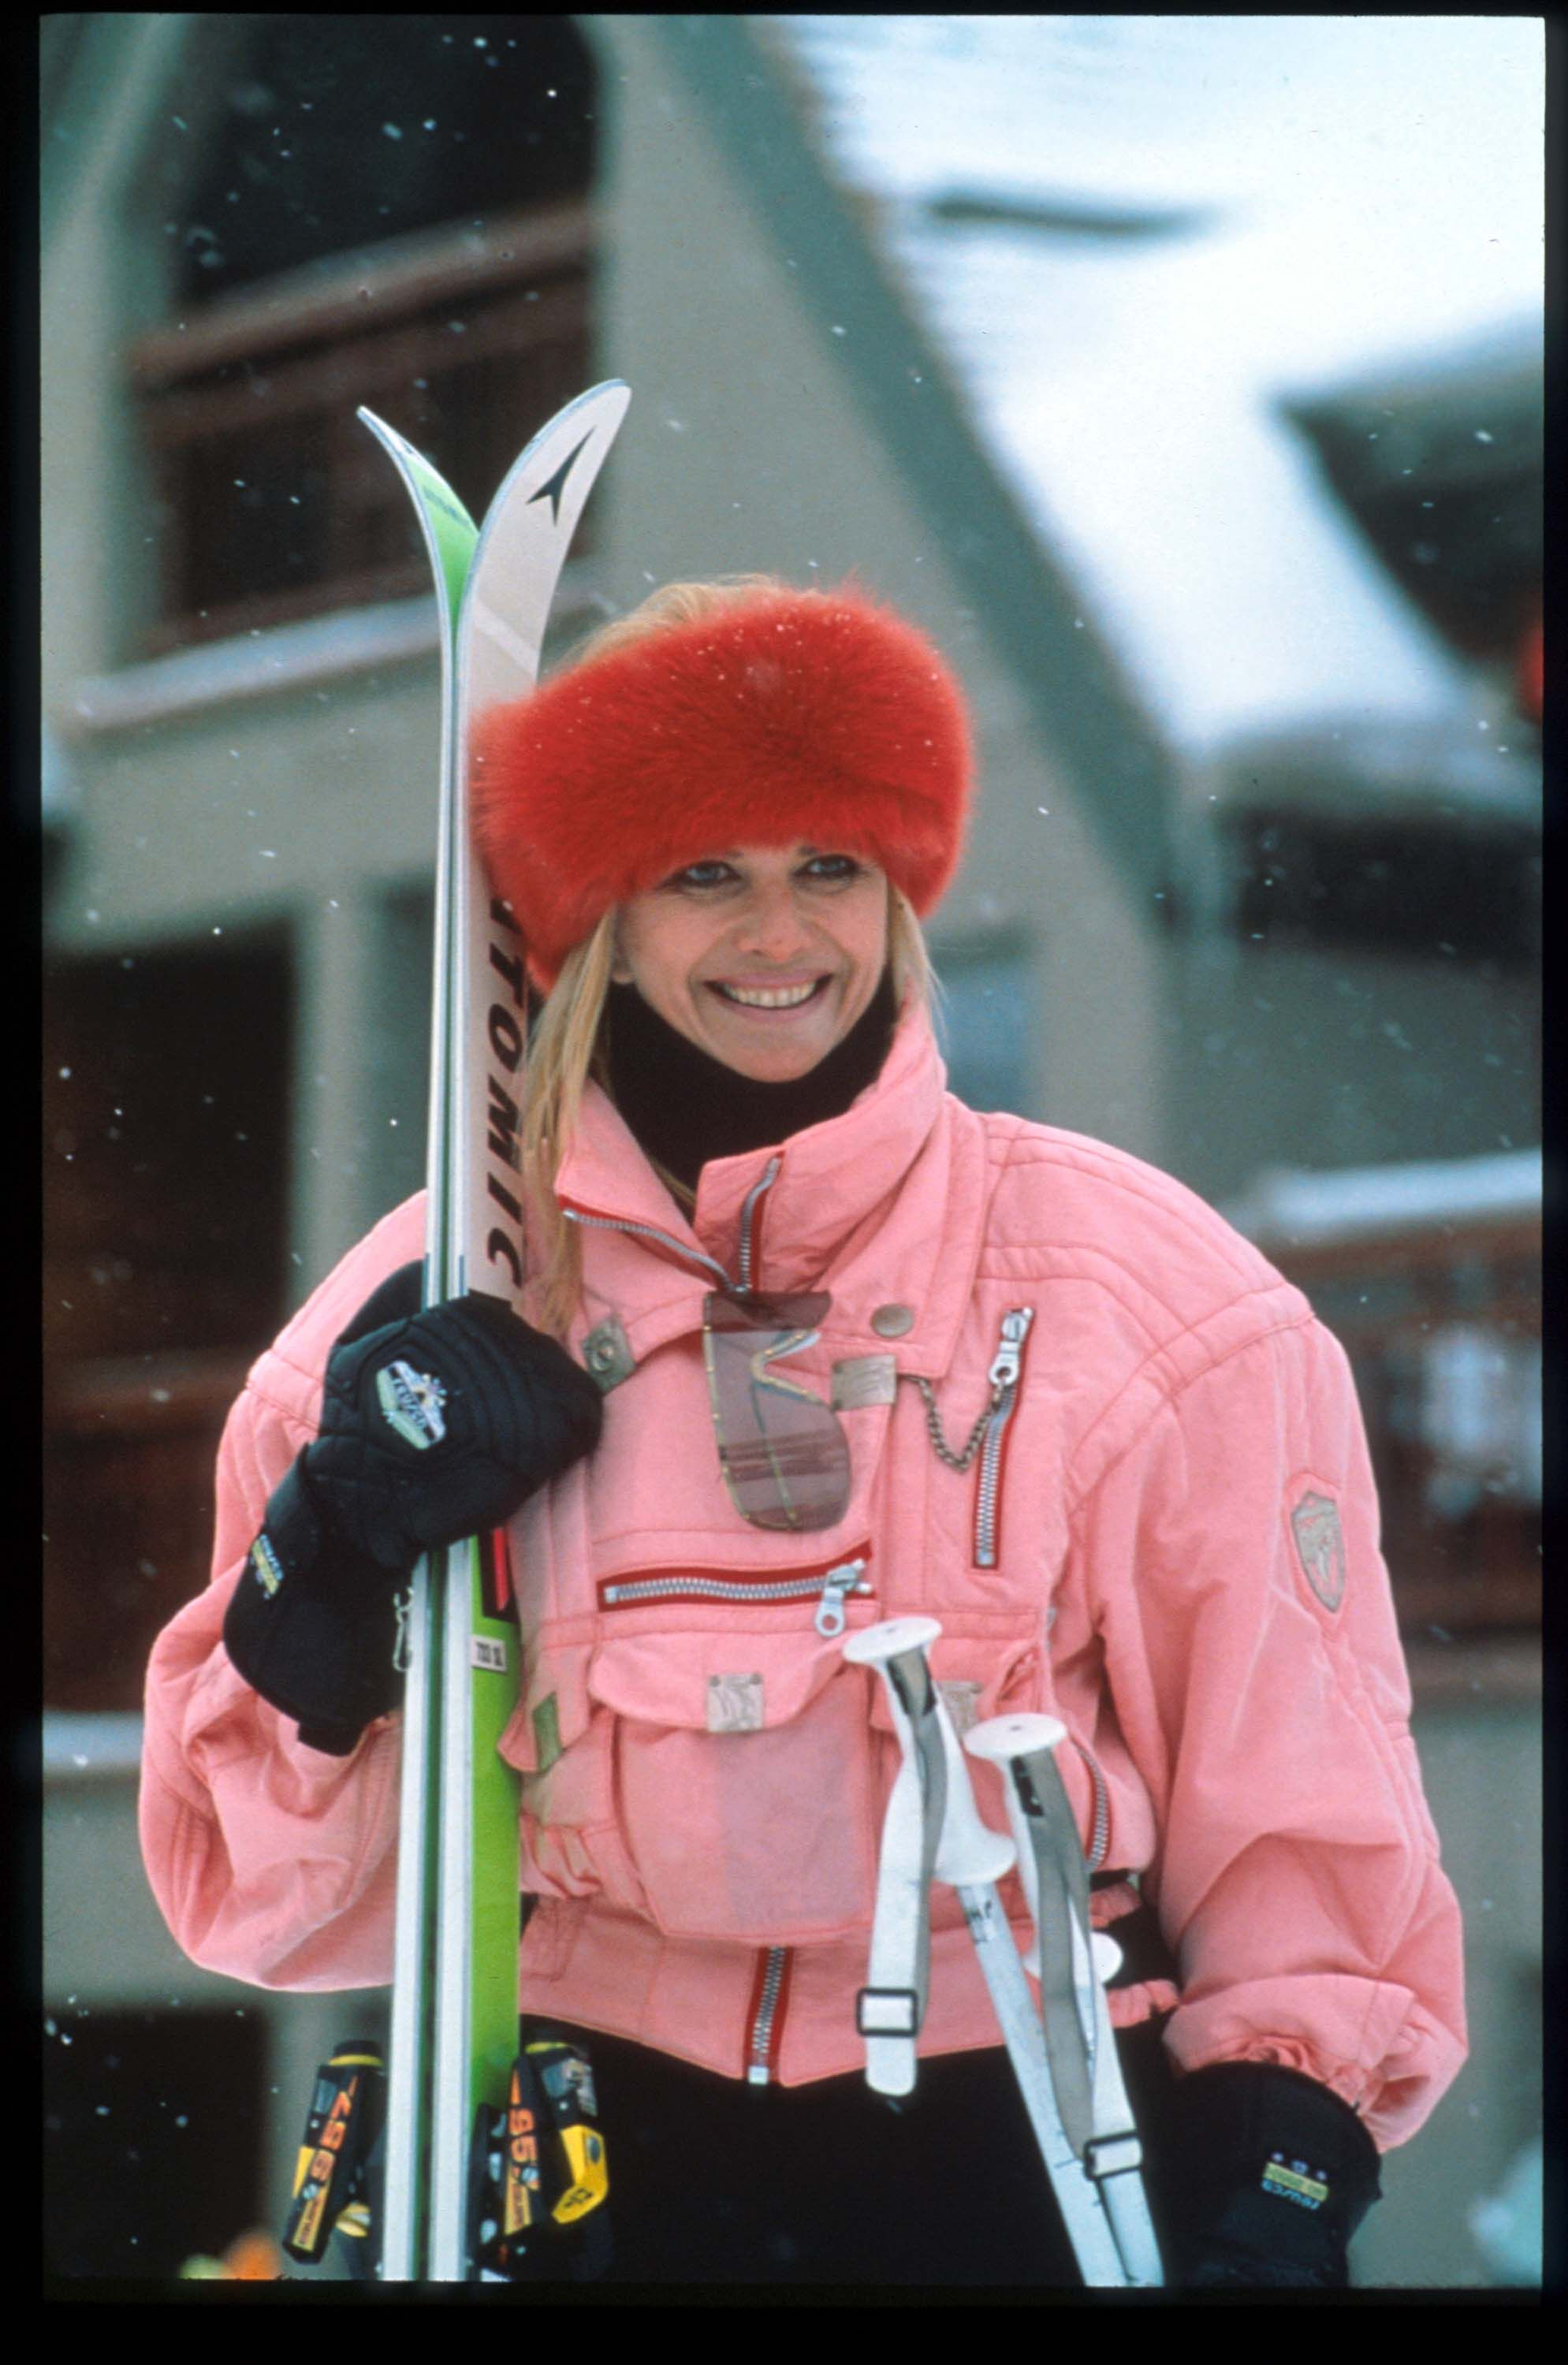 Former model, socialite and yes, Olympic skier, Ivana Trump doesn't shy away from an opportunity to wear stand-out colors in Aspen. #lifegoals Getty / Russell Turiak / Contributor - TownandCountryMag.com